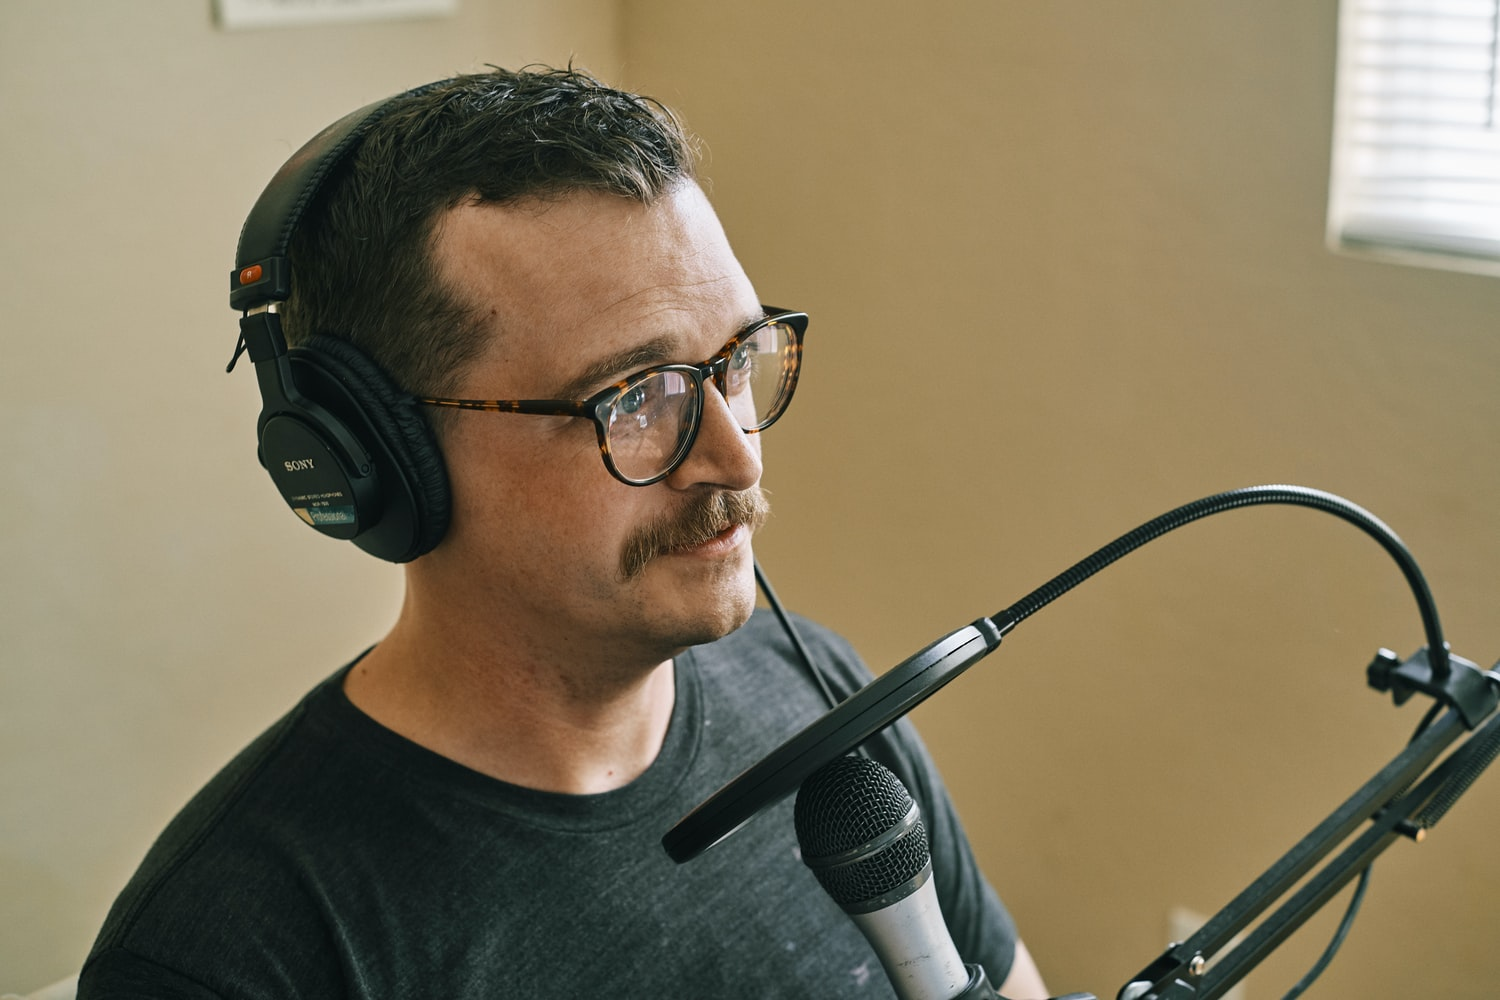 Best Voice-Over Recording Methods to Capture Your Target Audience